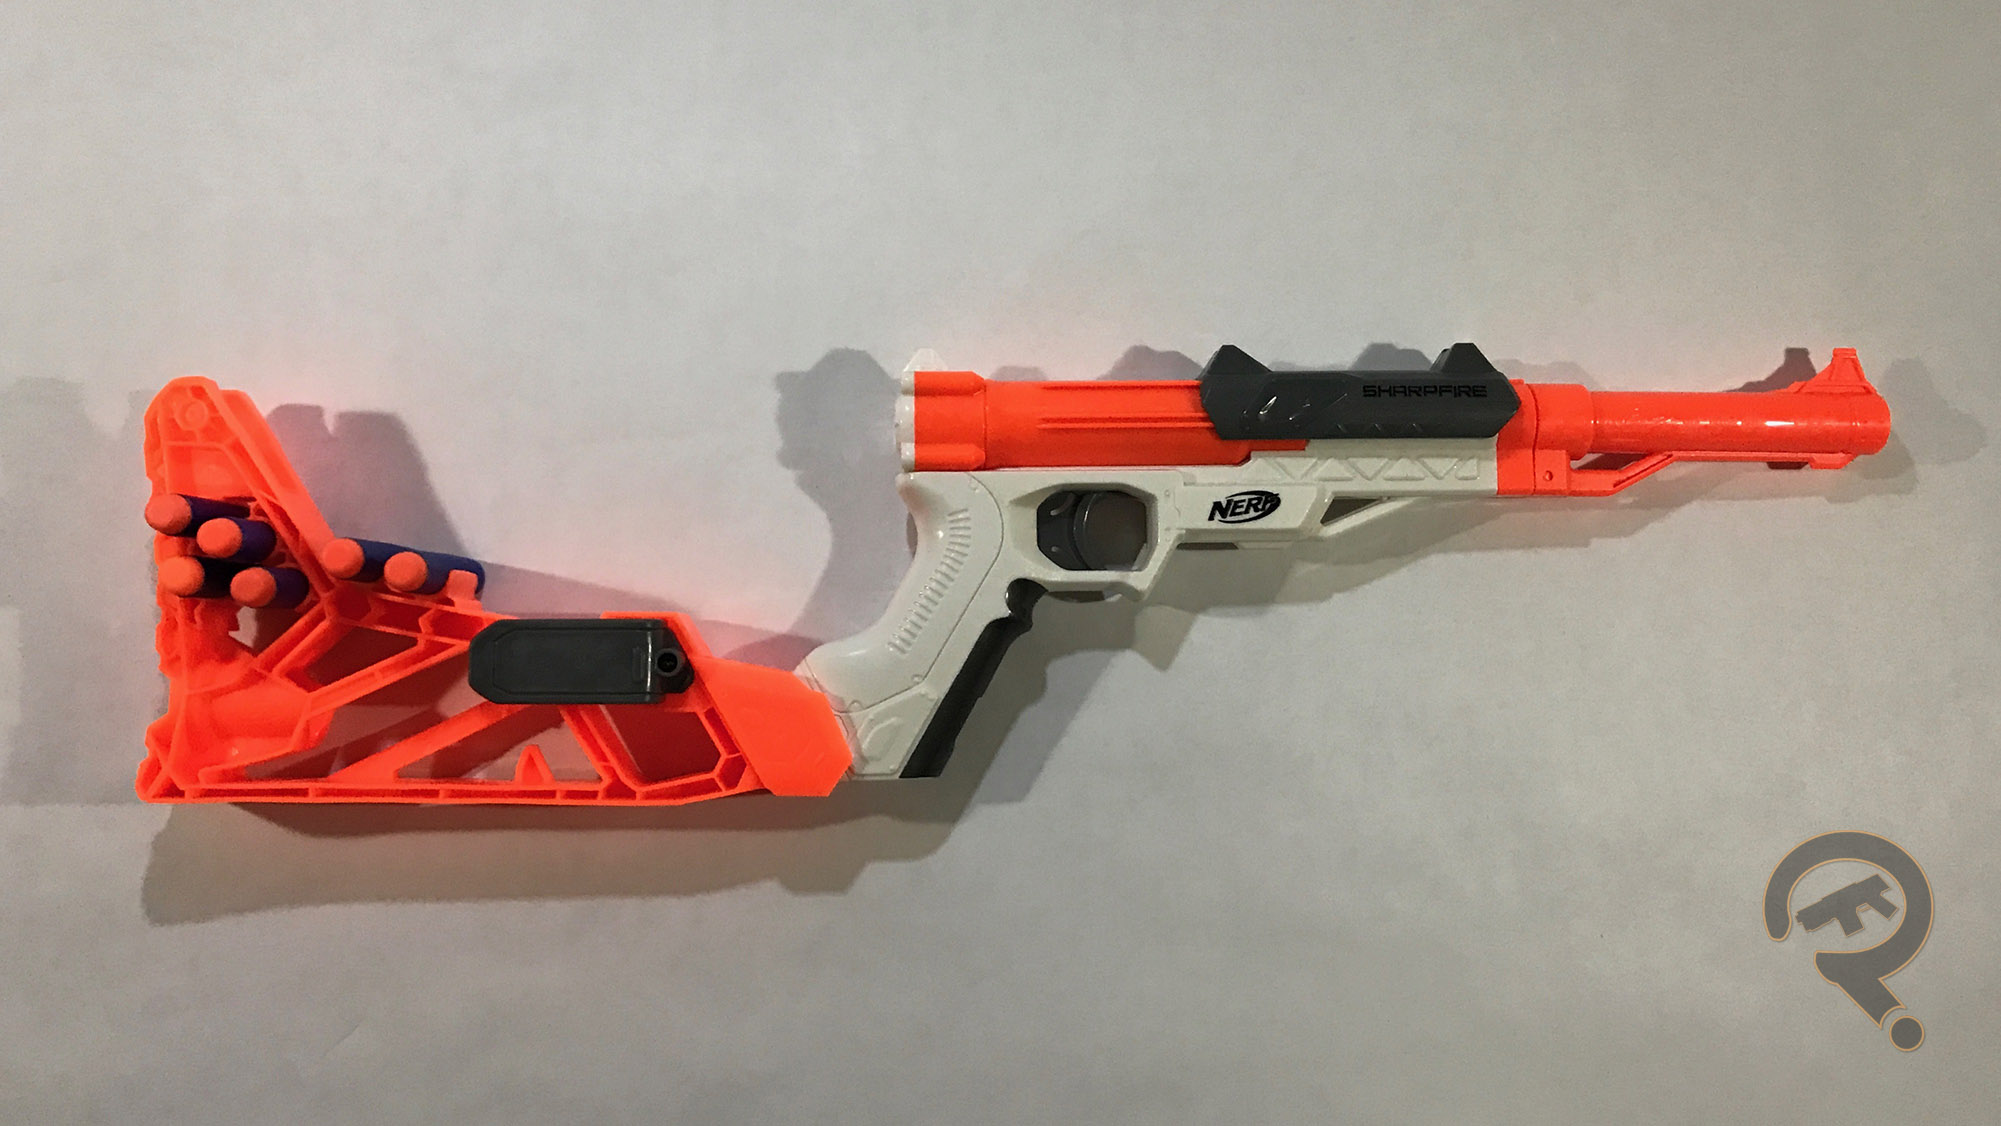 This week, we'll be playing the NES classic, Duckhunt using the zapper  light gun. Wait, hang on. Nope, scratch that, this is a Nerf blaster, but  let's be ...